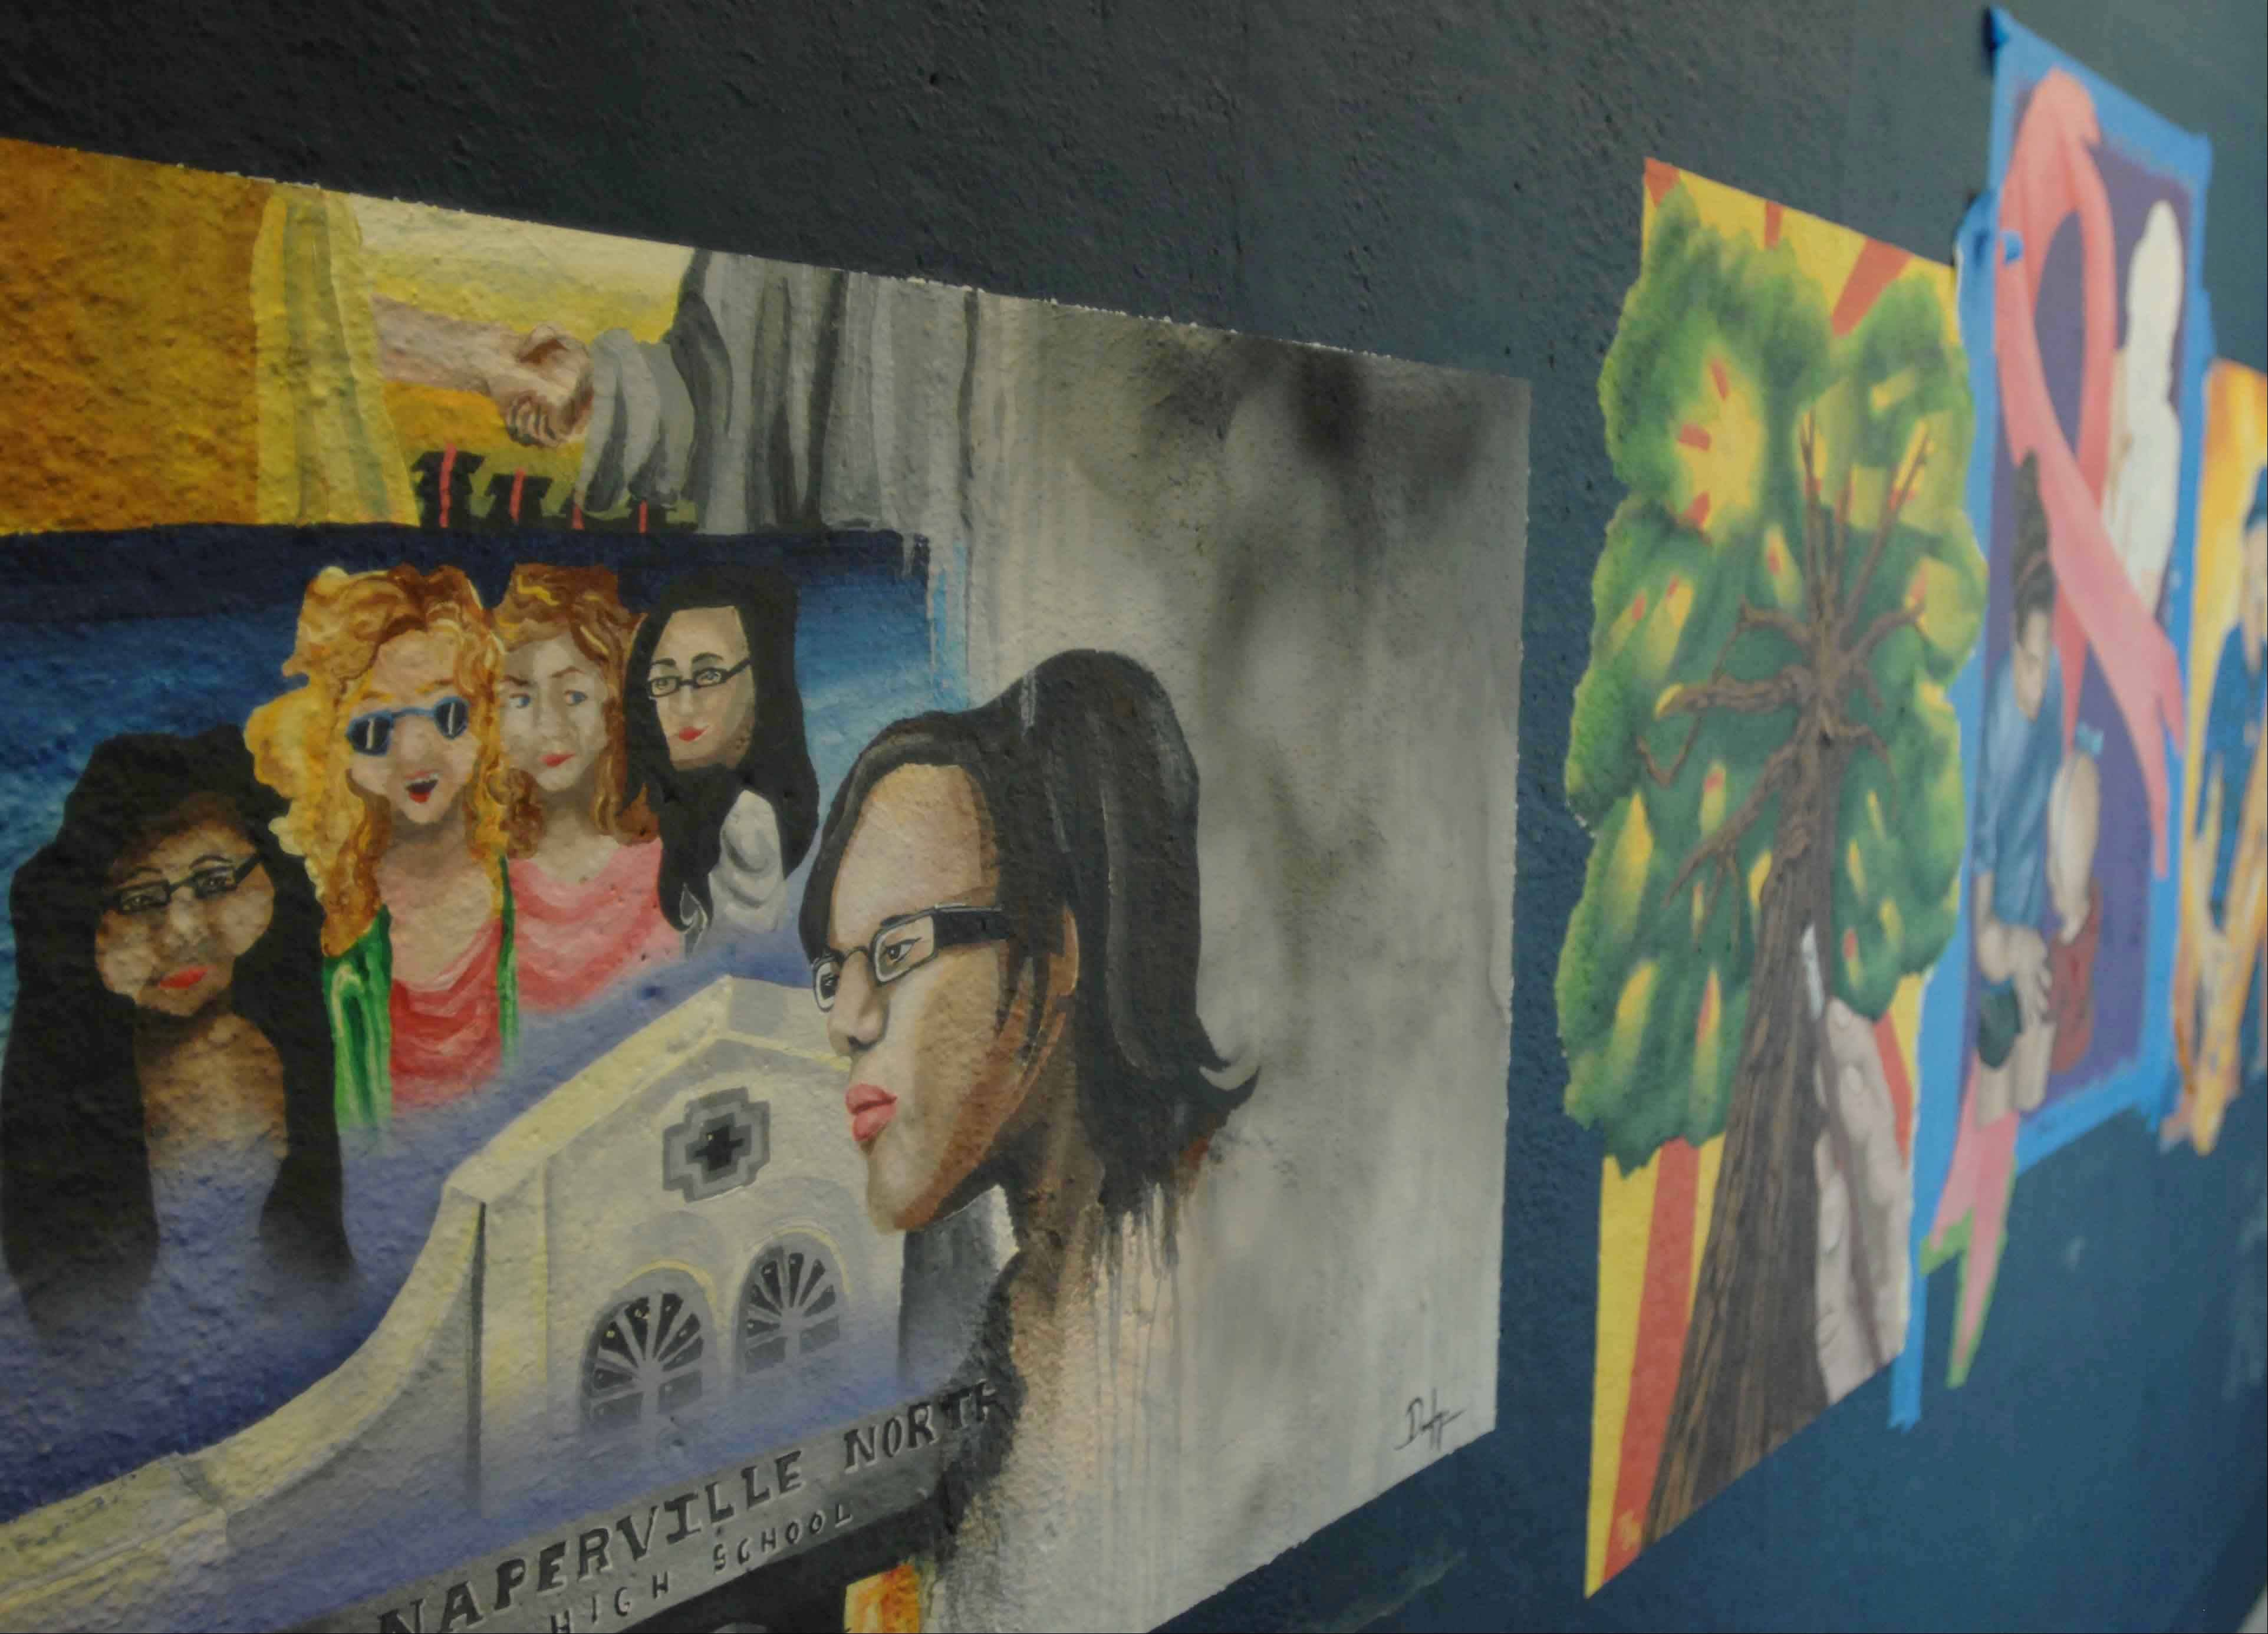 The fourth floor elevator lobby of the Van Buren parking garage is decorated with murals painted by Naperville North High School students.